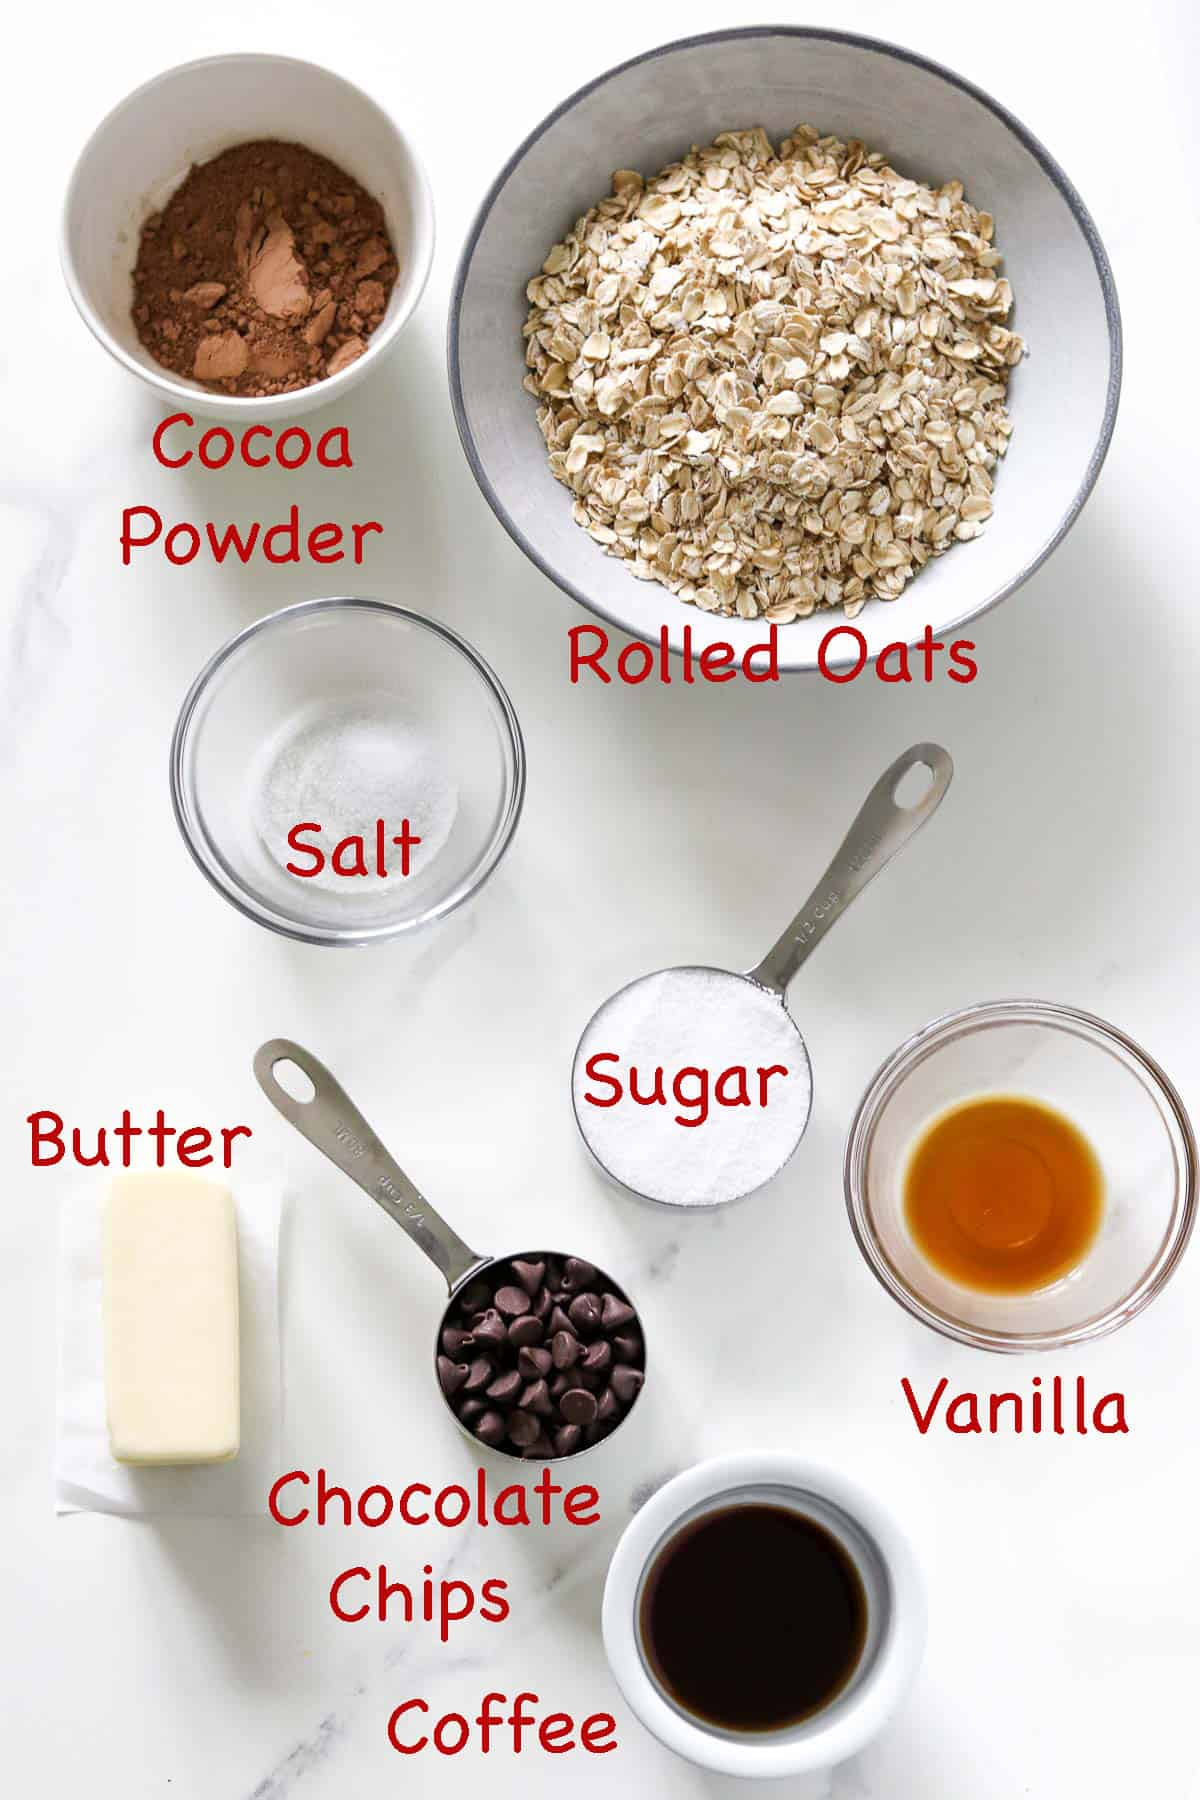 Labeled ingredients for No Bake Swedish Chocolate Oat Balls.